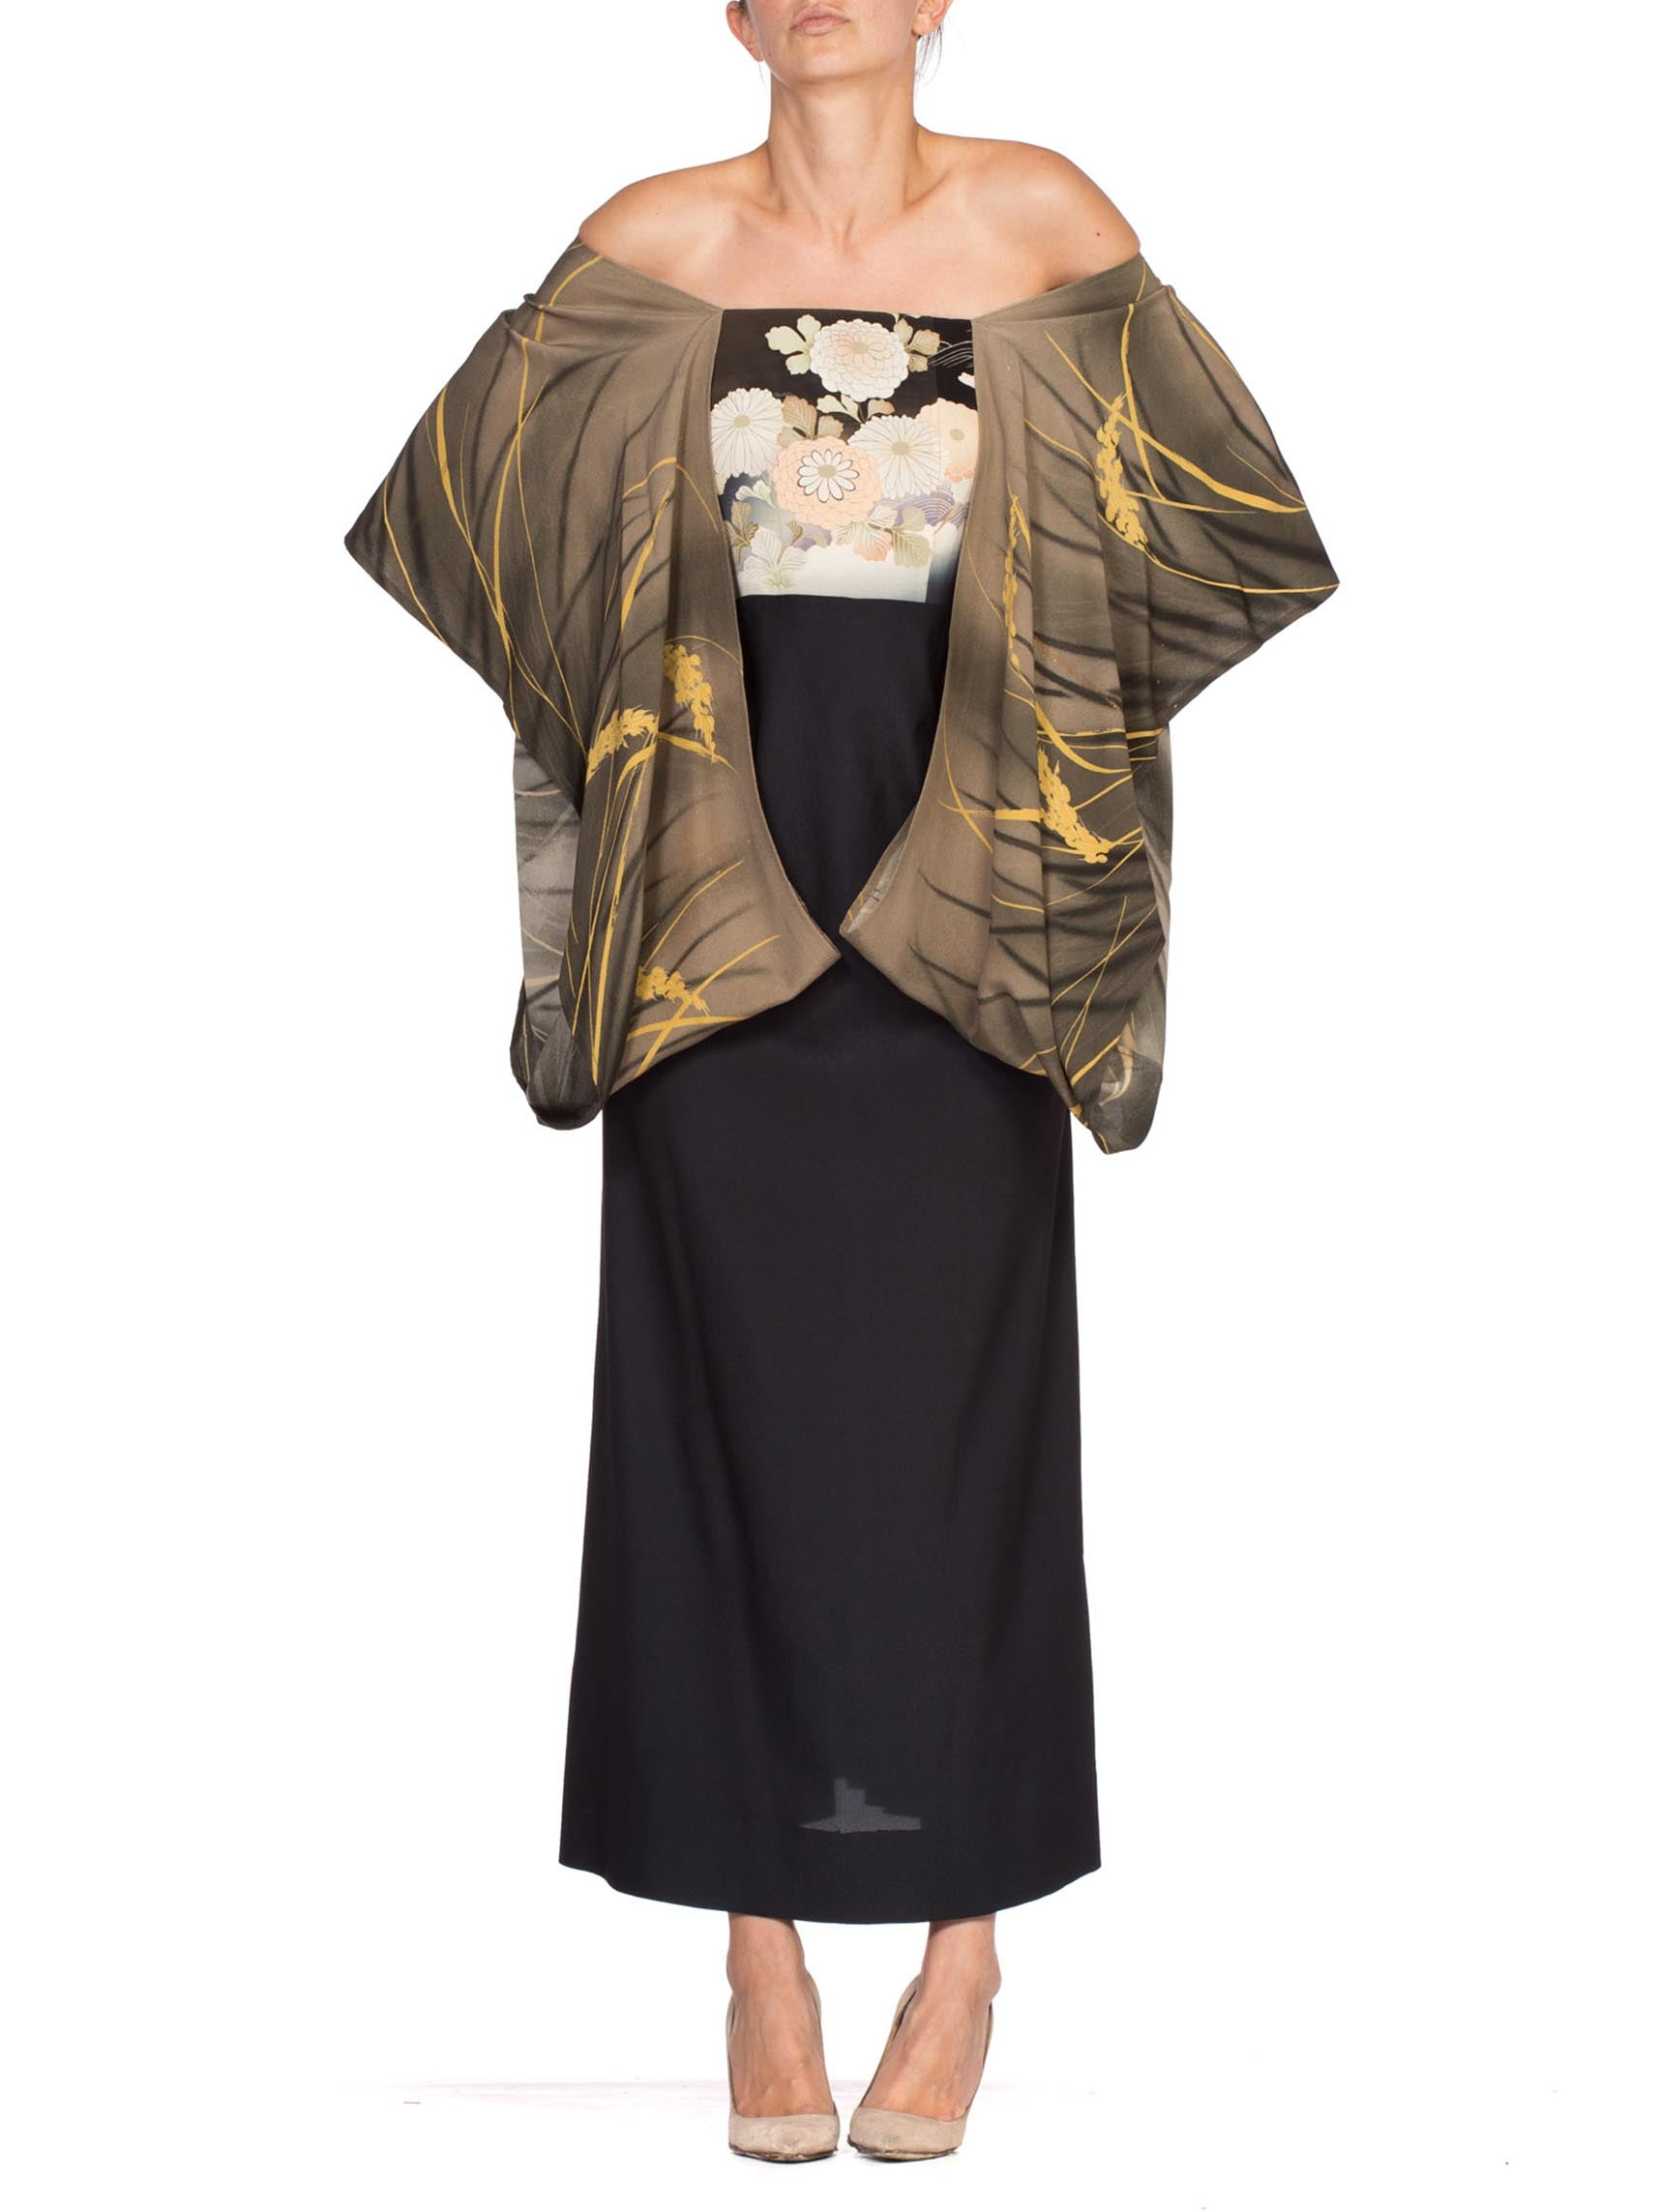 1970'S Black Polyester Dress With Hand Painted Japanese Kimono Sleeves